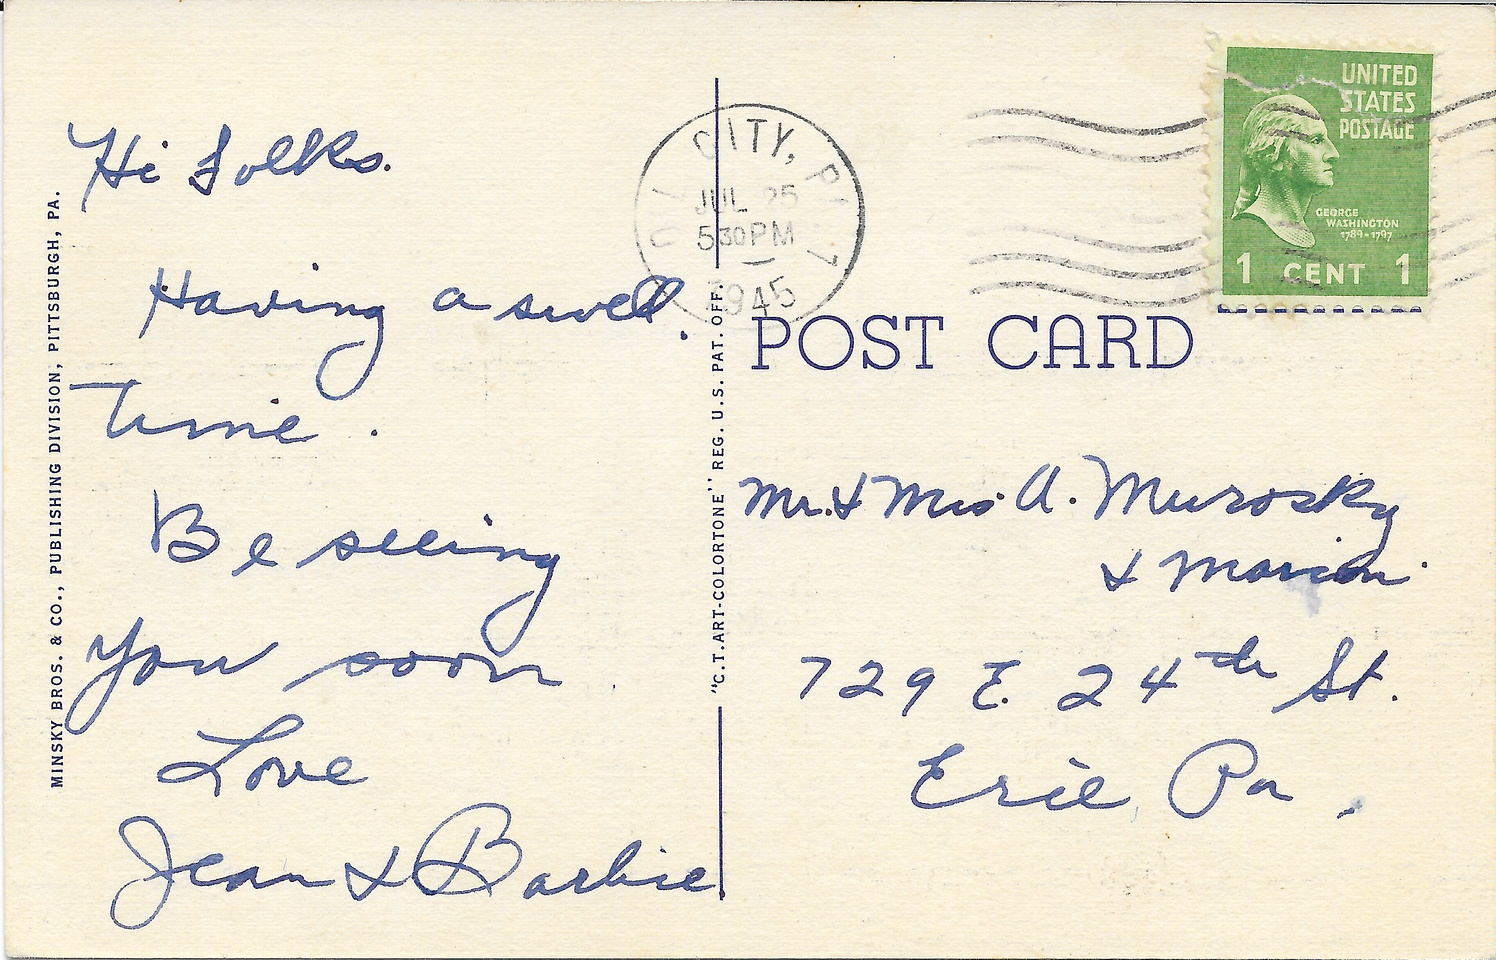 Michelle M. Murosky: The Postcard Collection &emdash; July 25, 1945